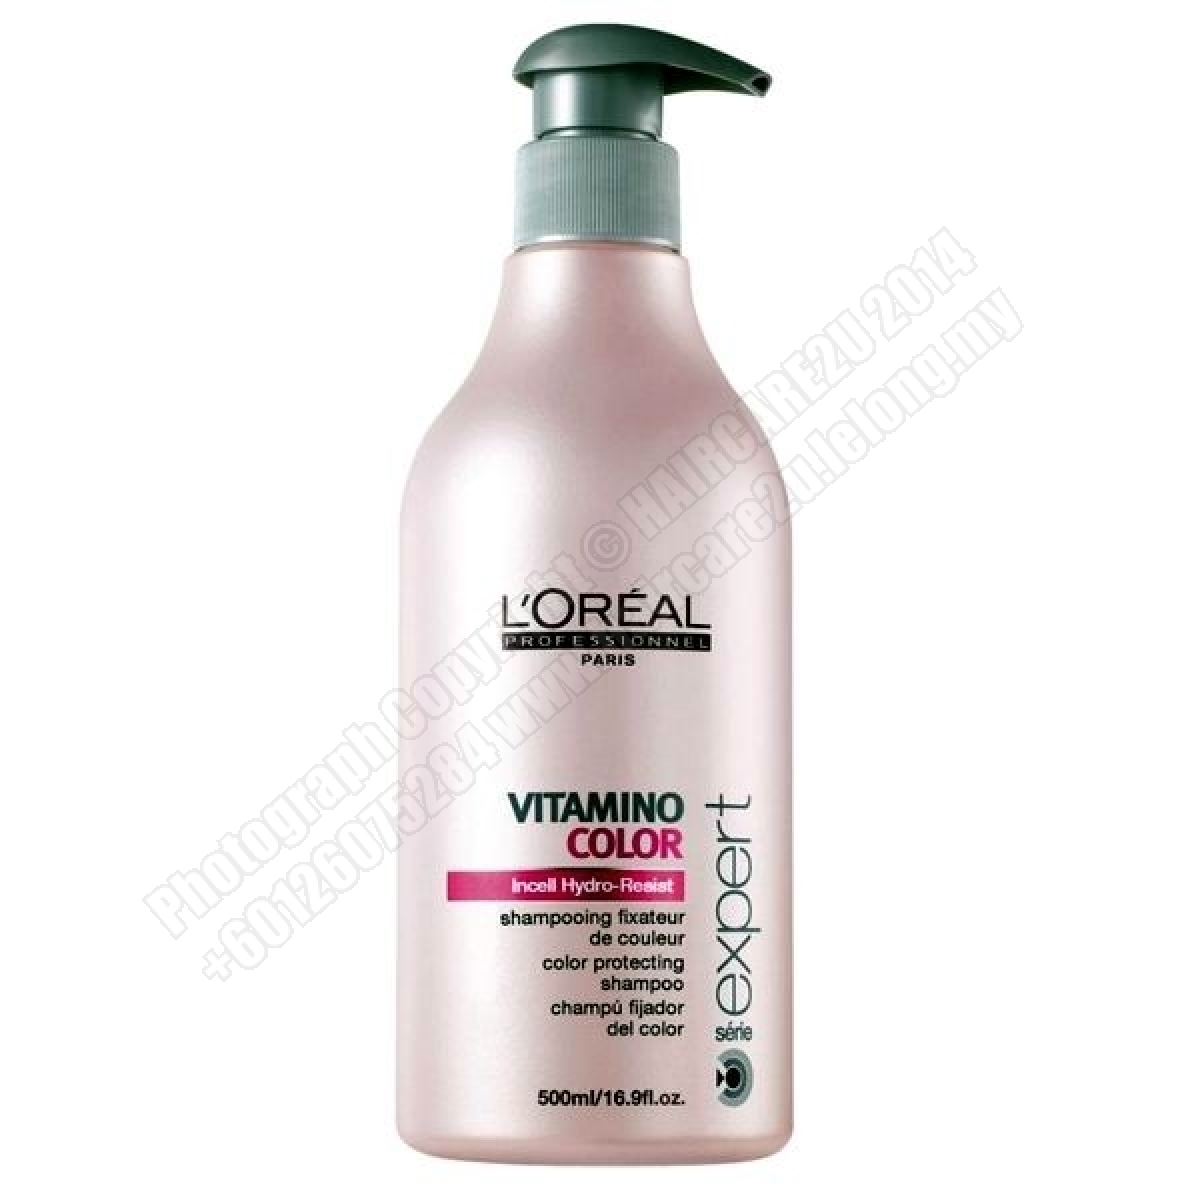 500ml Loreal Vitamino Color Hair Shampoo Haircare2u Online